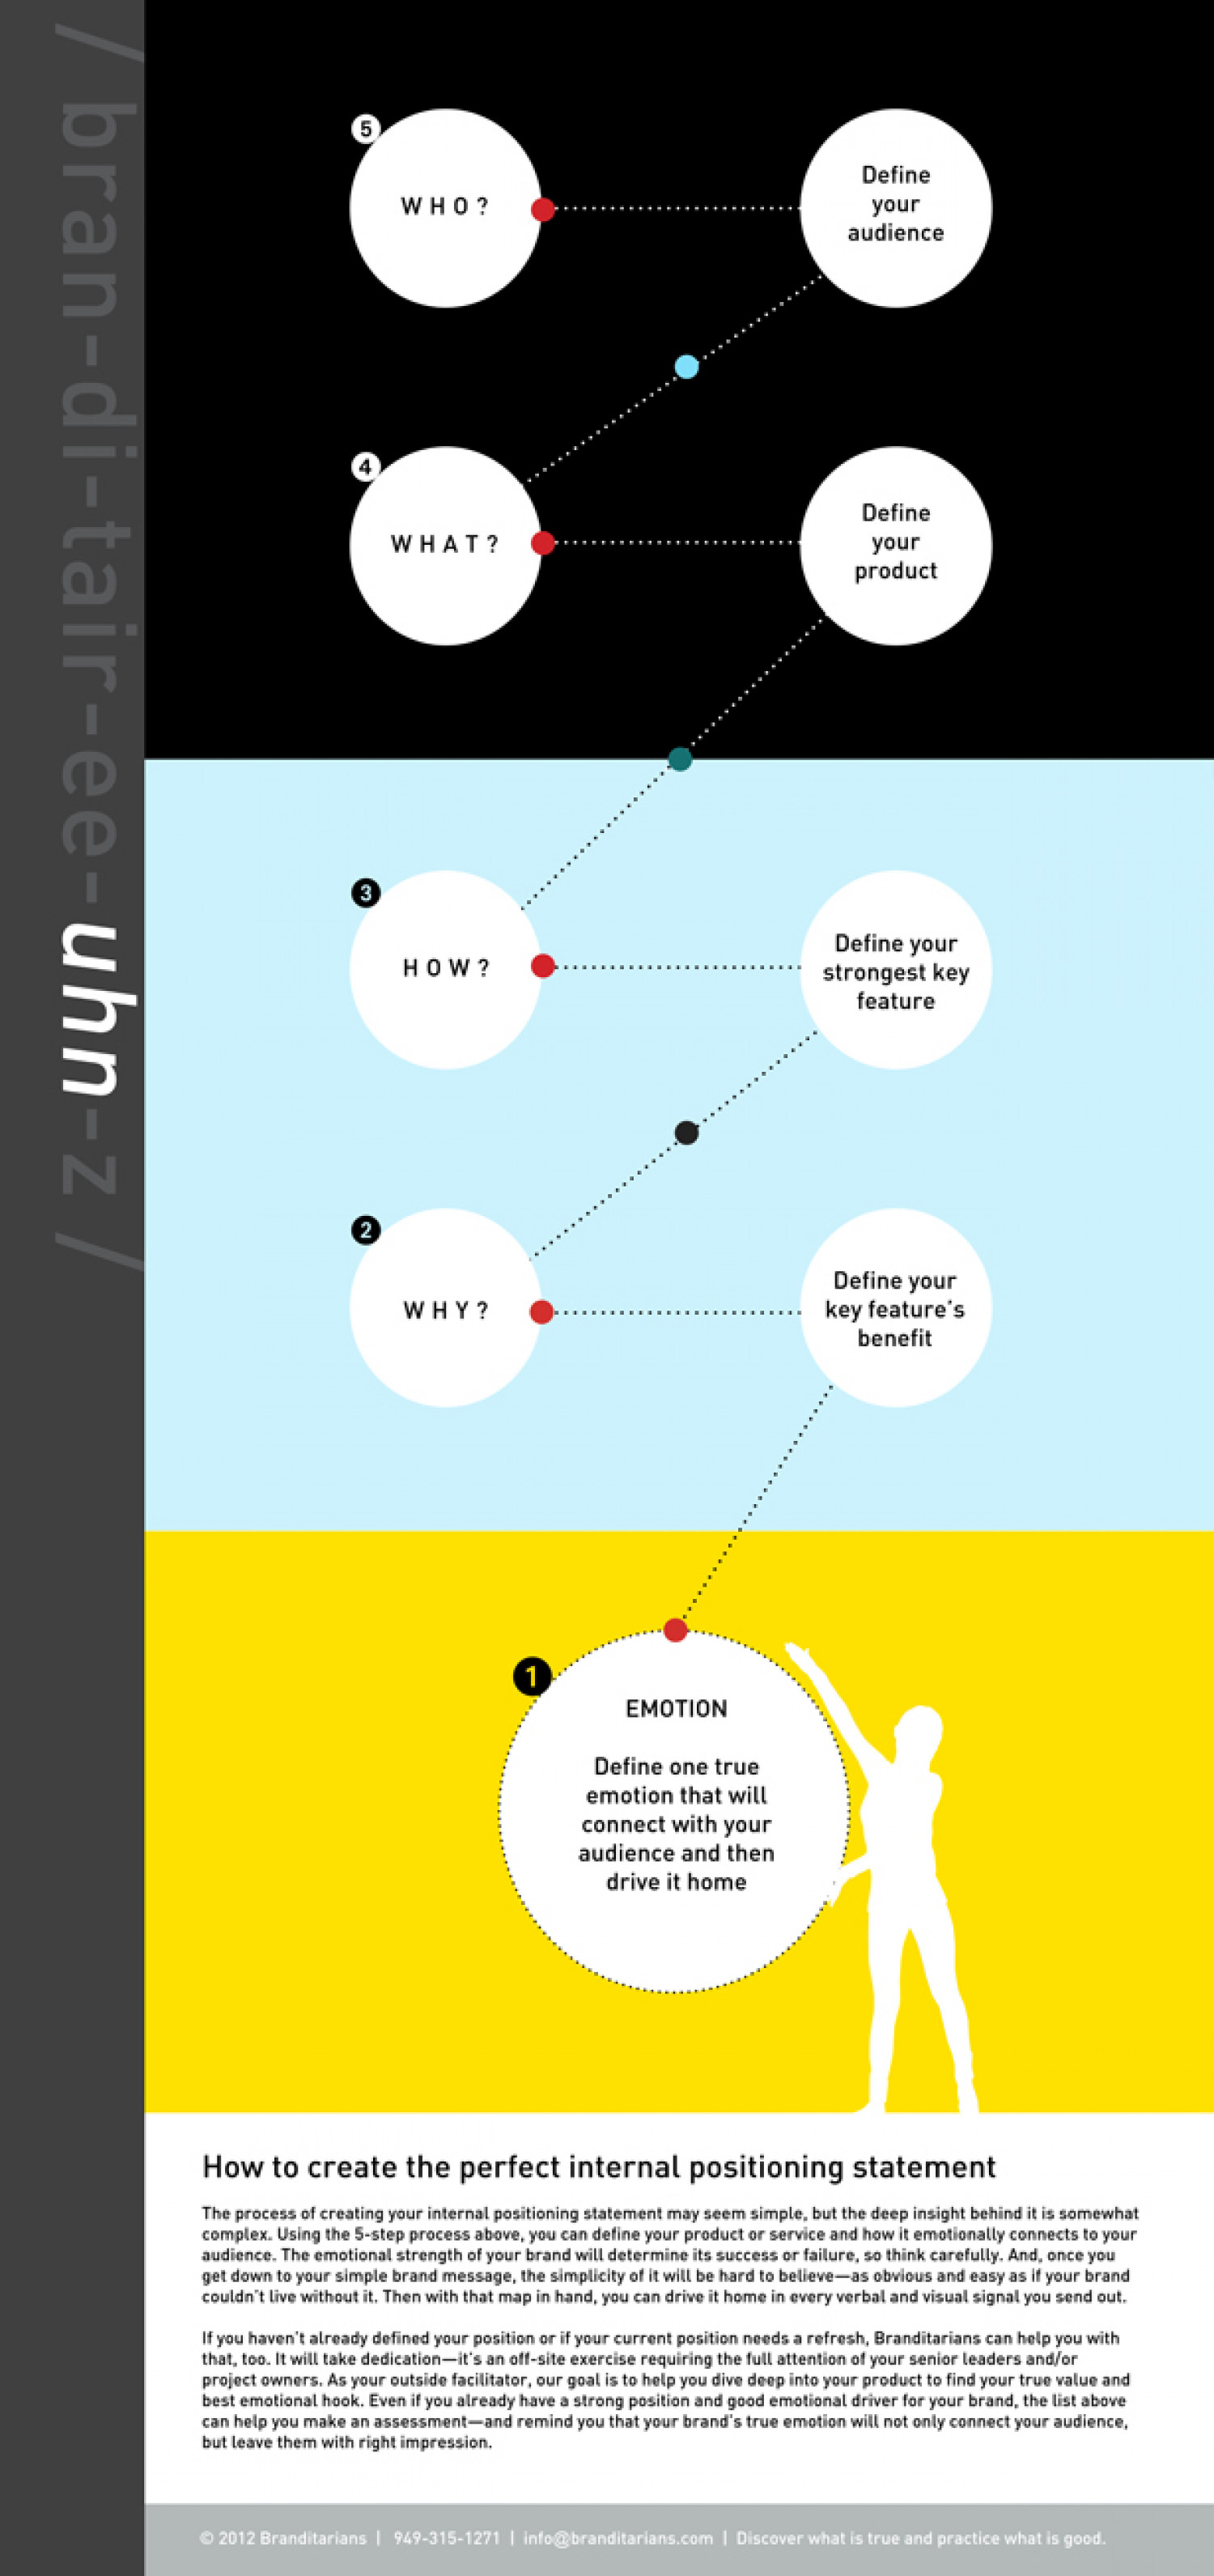 How to create the perfect internal positioning statement Infographic